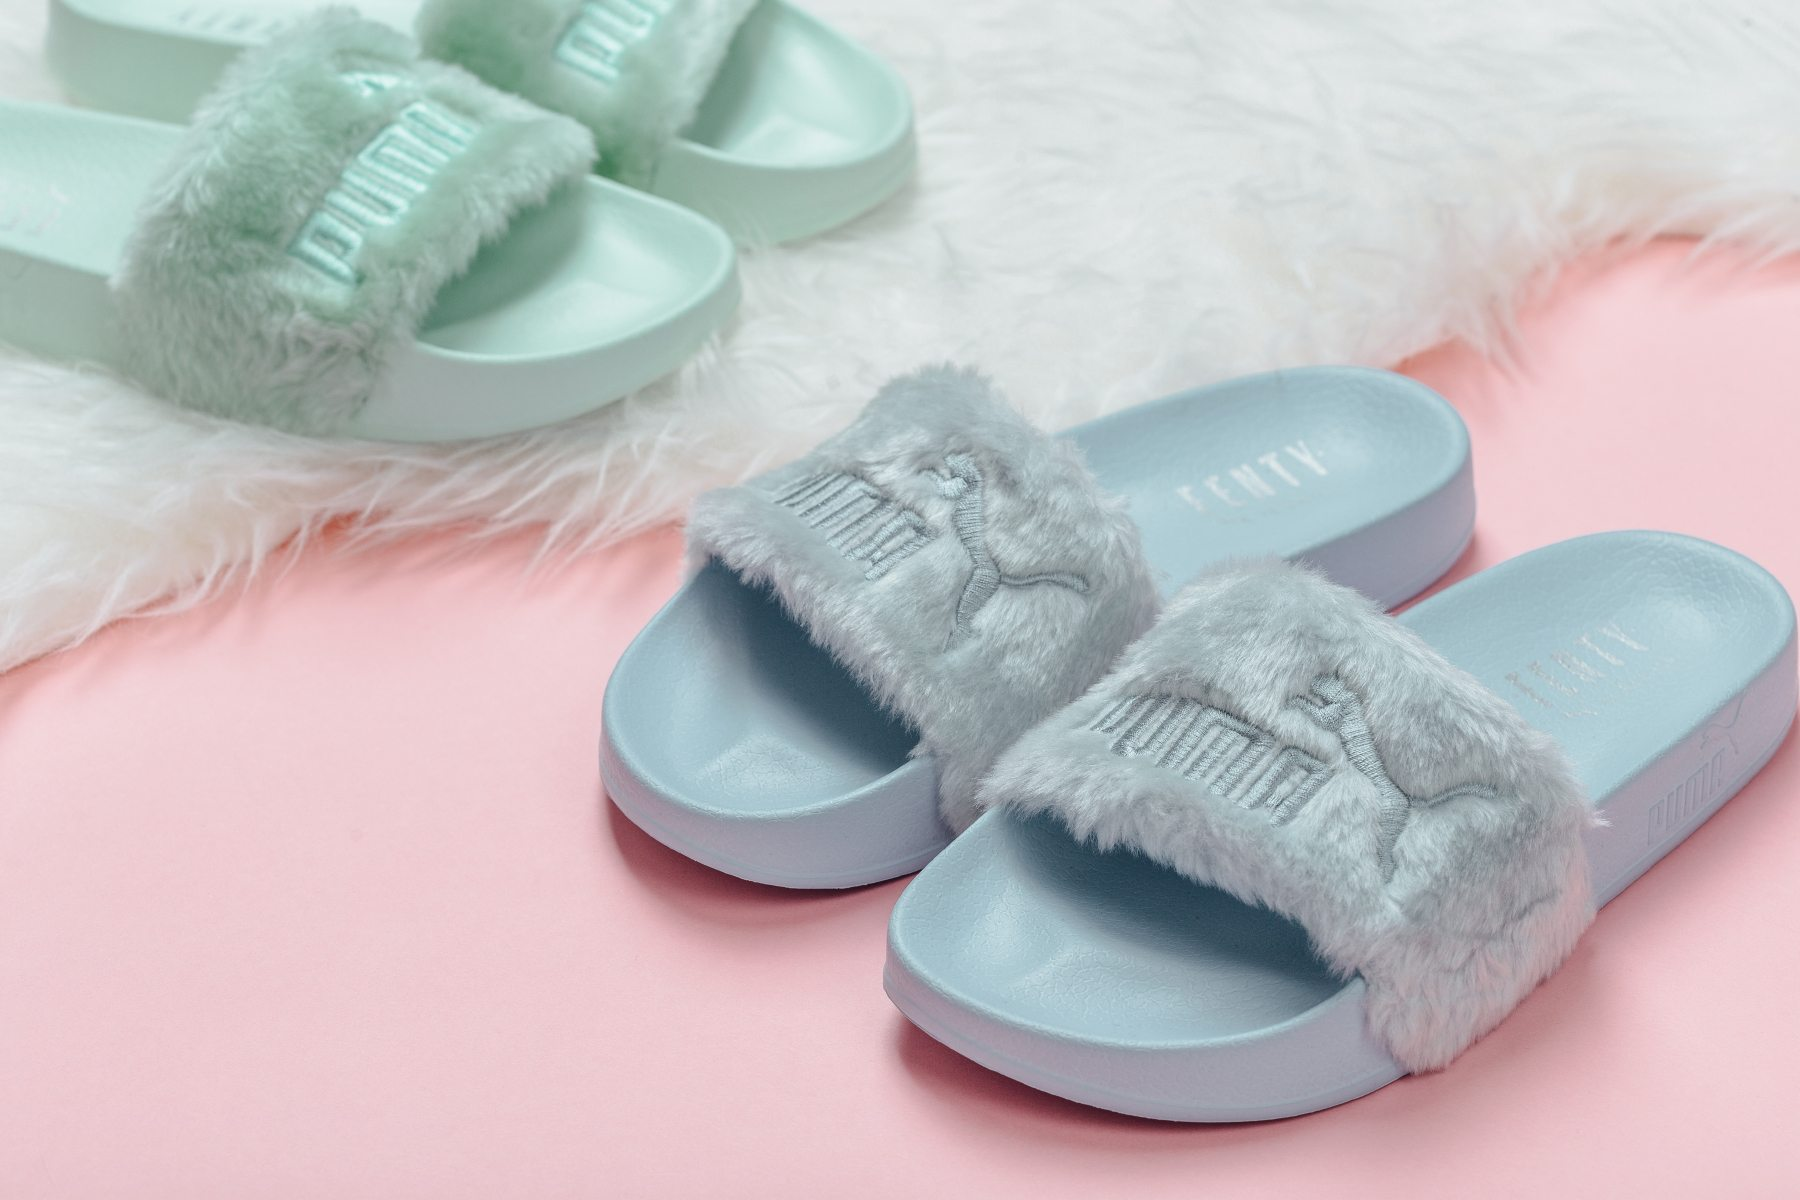 Fenty x PUMA Slides Deliver Cool Tones for the Hottest